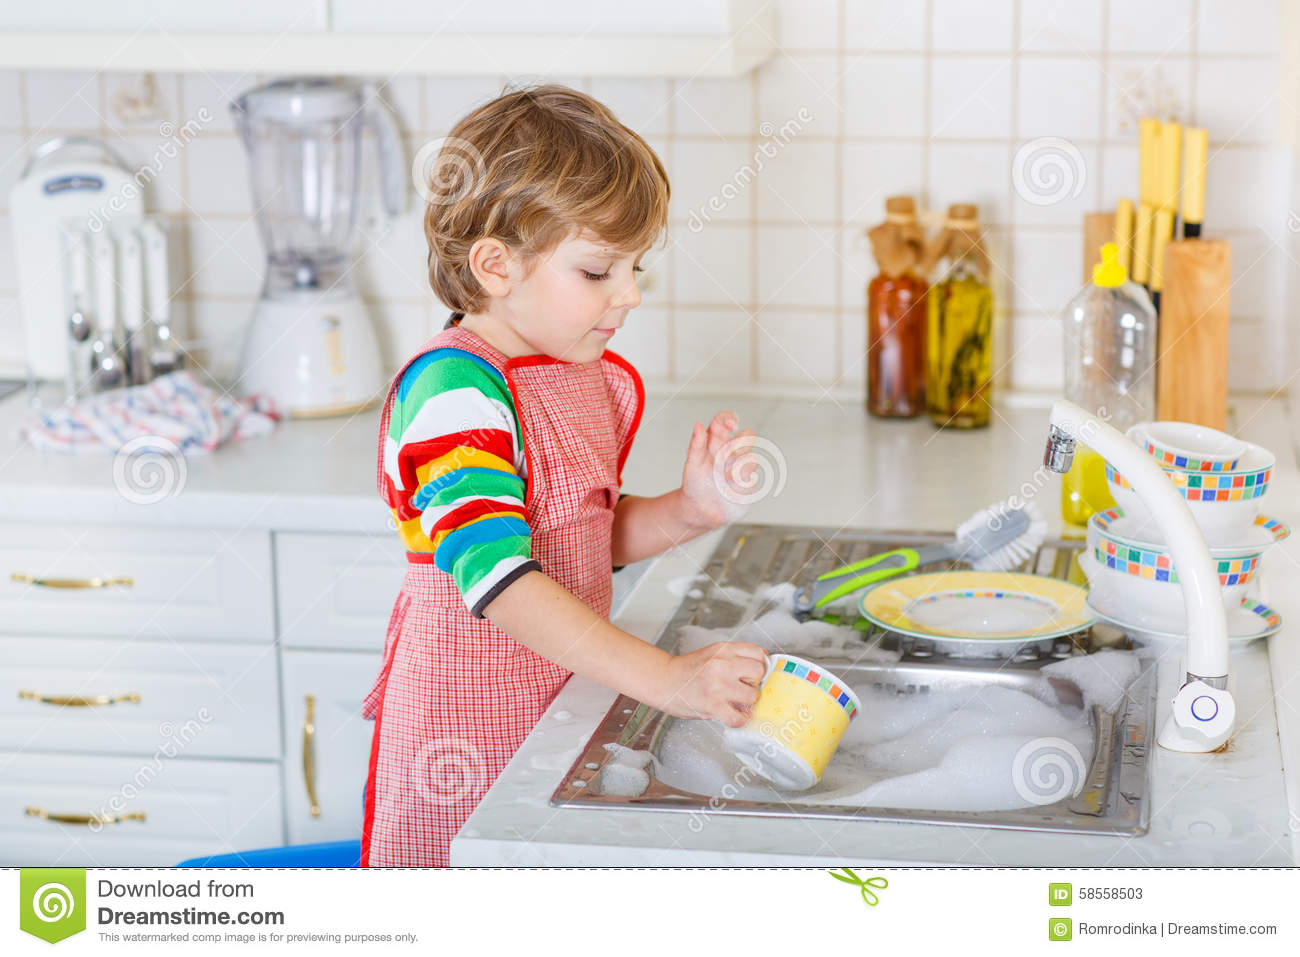 Funny Blond Kid Boy Washing Dishes In Domestic Kitchen Stock Image  Image 58558503